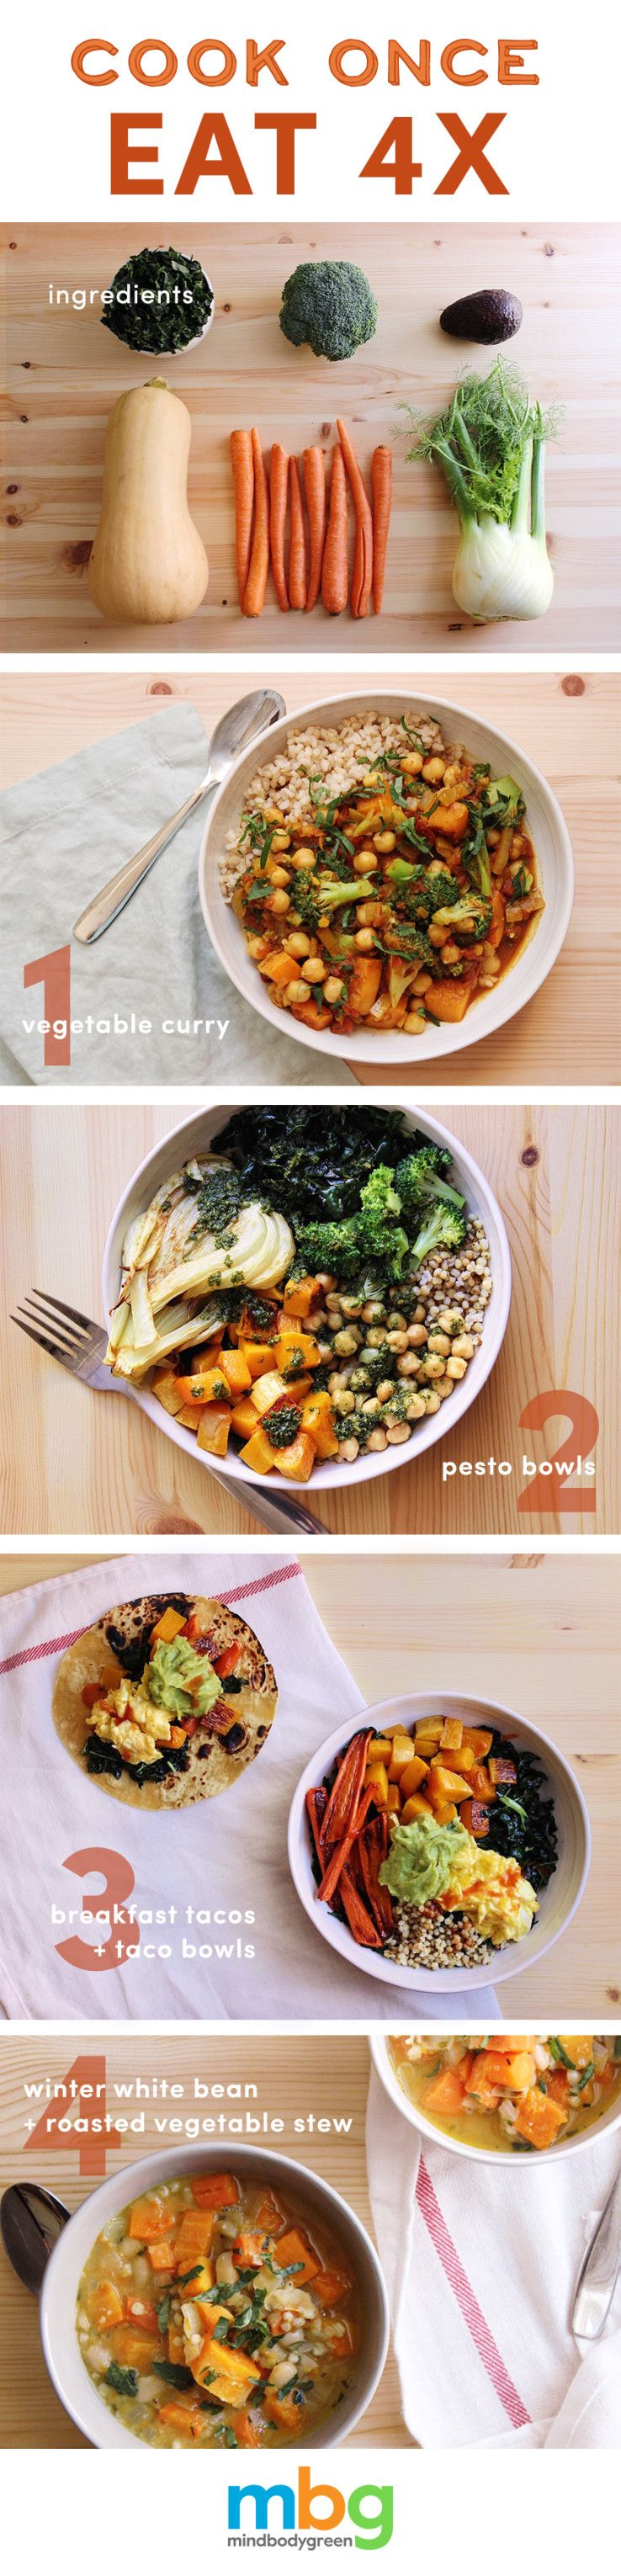 This is smart, efficient meal planning. Use vegan pesto and skip the eggs. The meals here fulfill all typical nutritional needs without them.